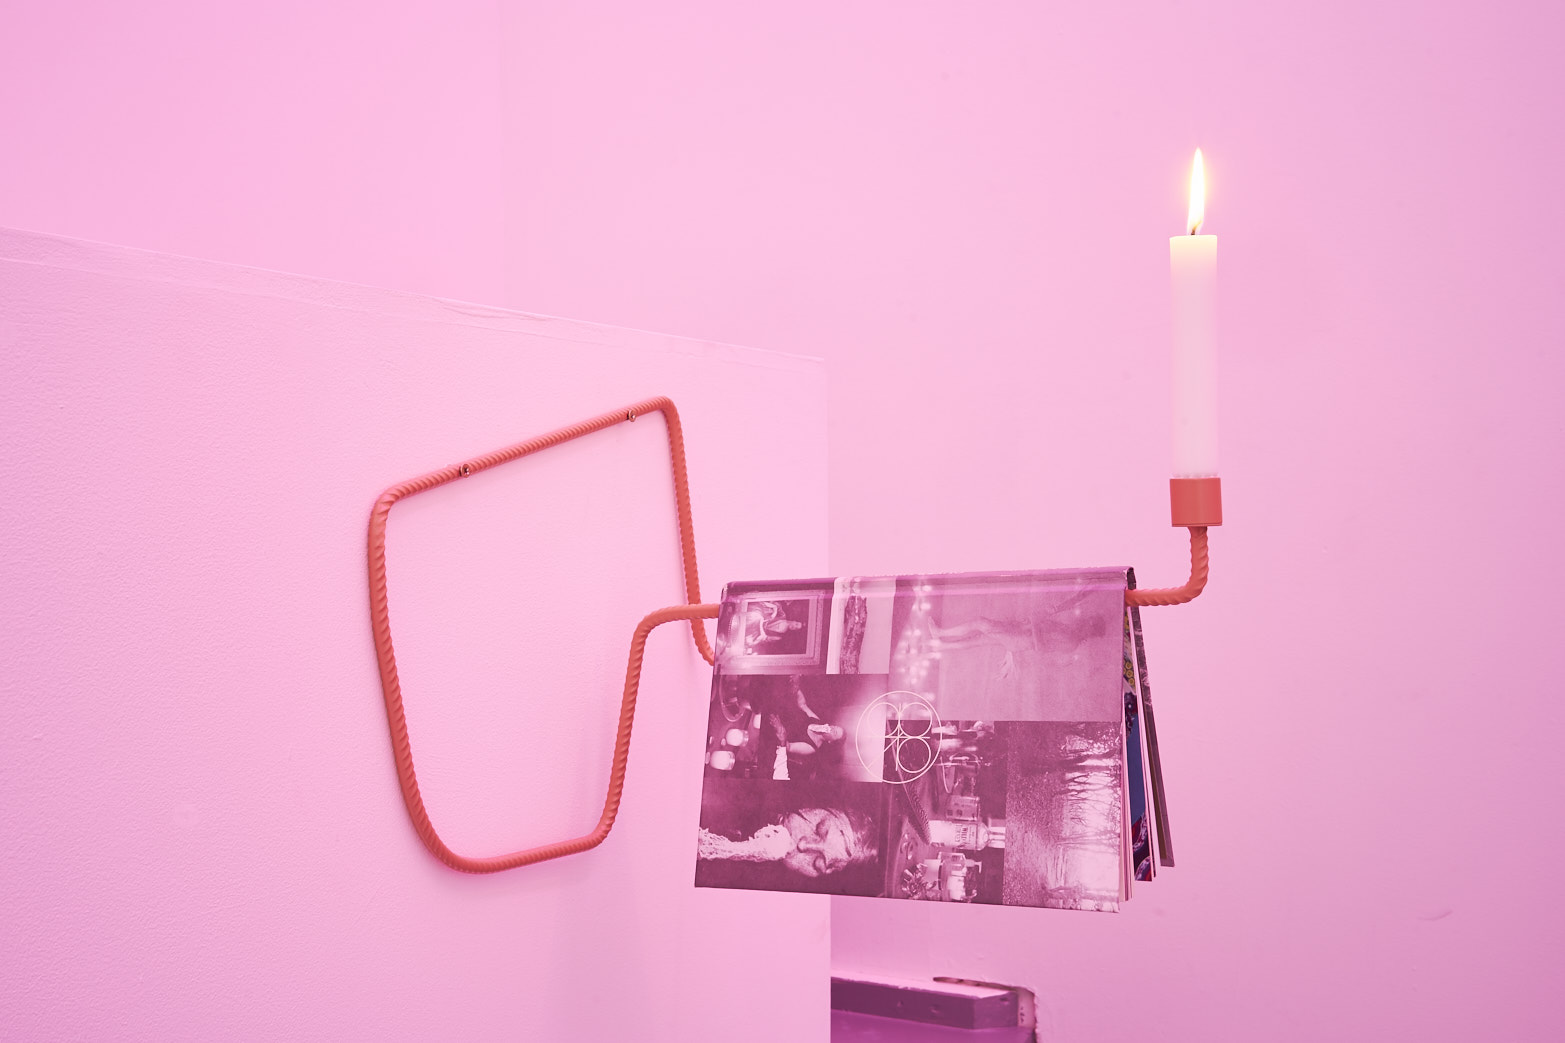 Richard Healy, Queer Spirits, 2016. Powder-coated steel with book, wax candle. Tenderpixel.